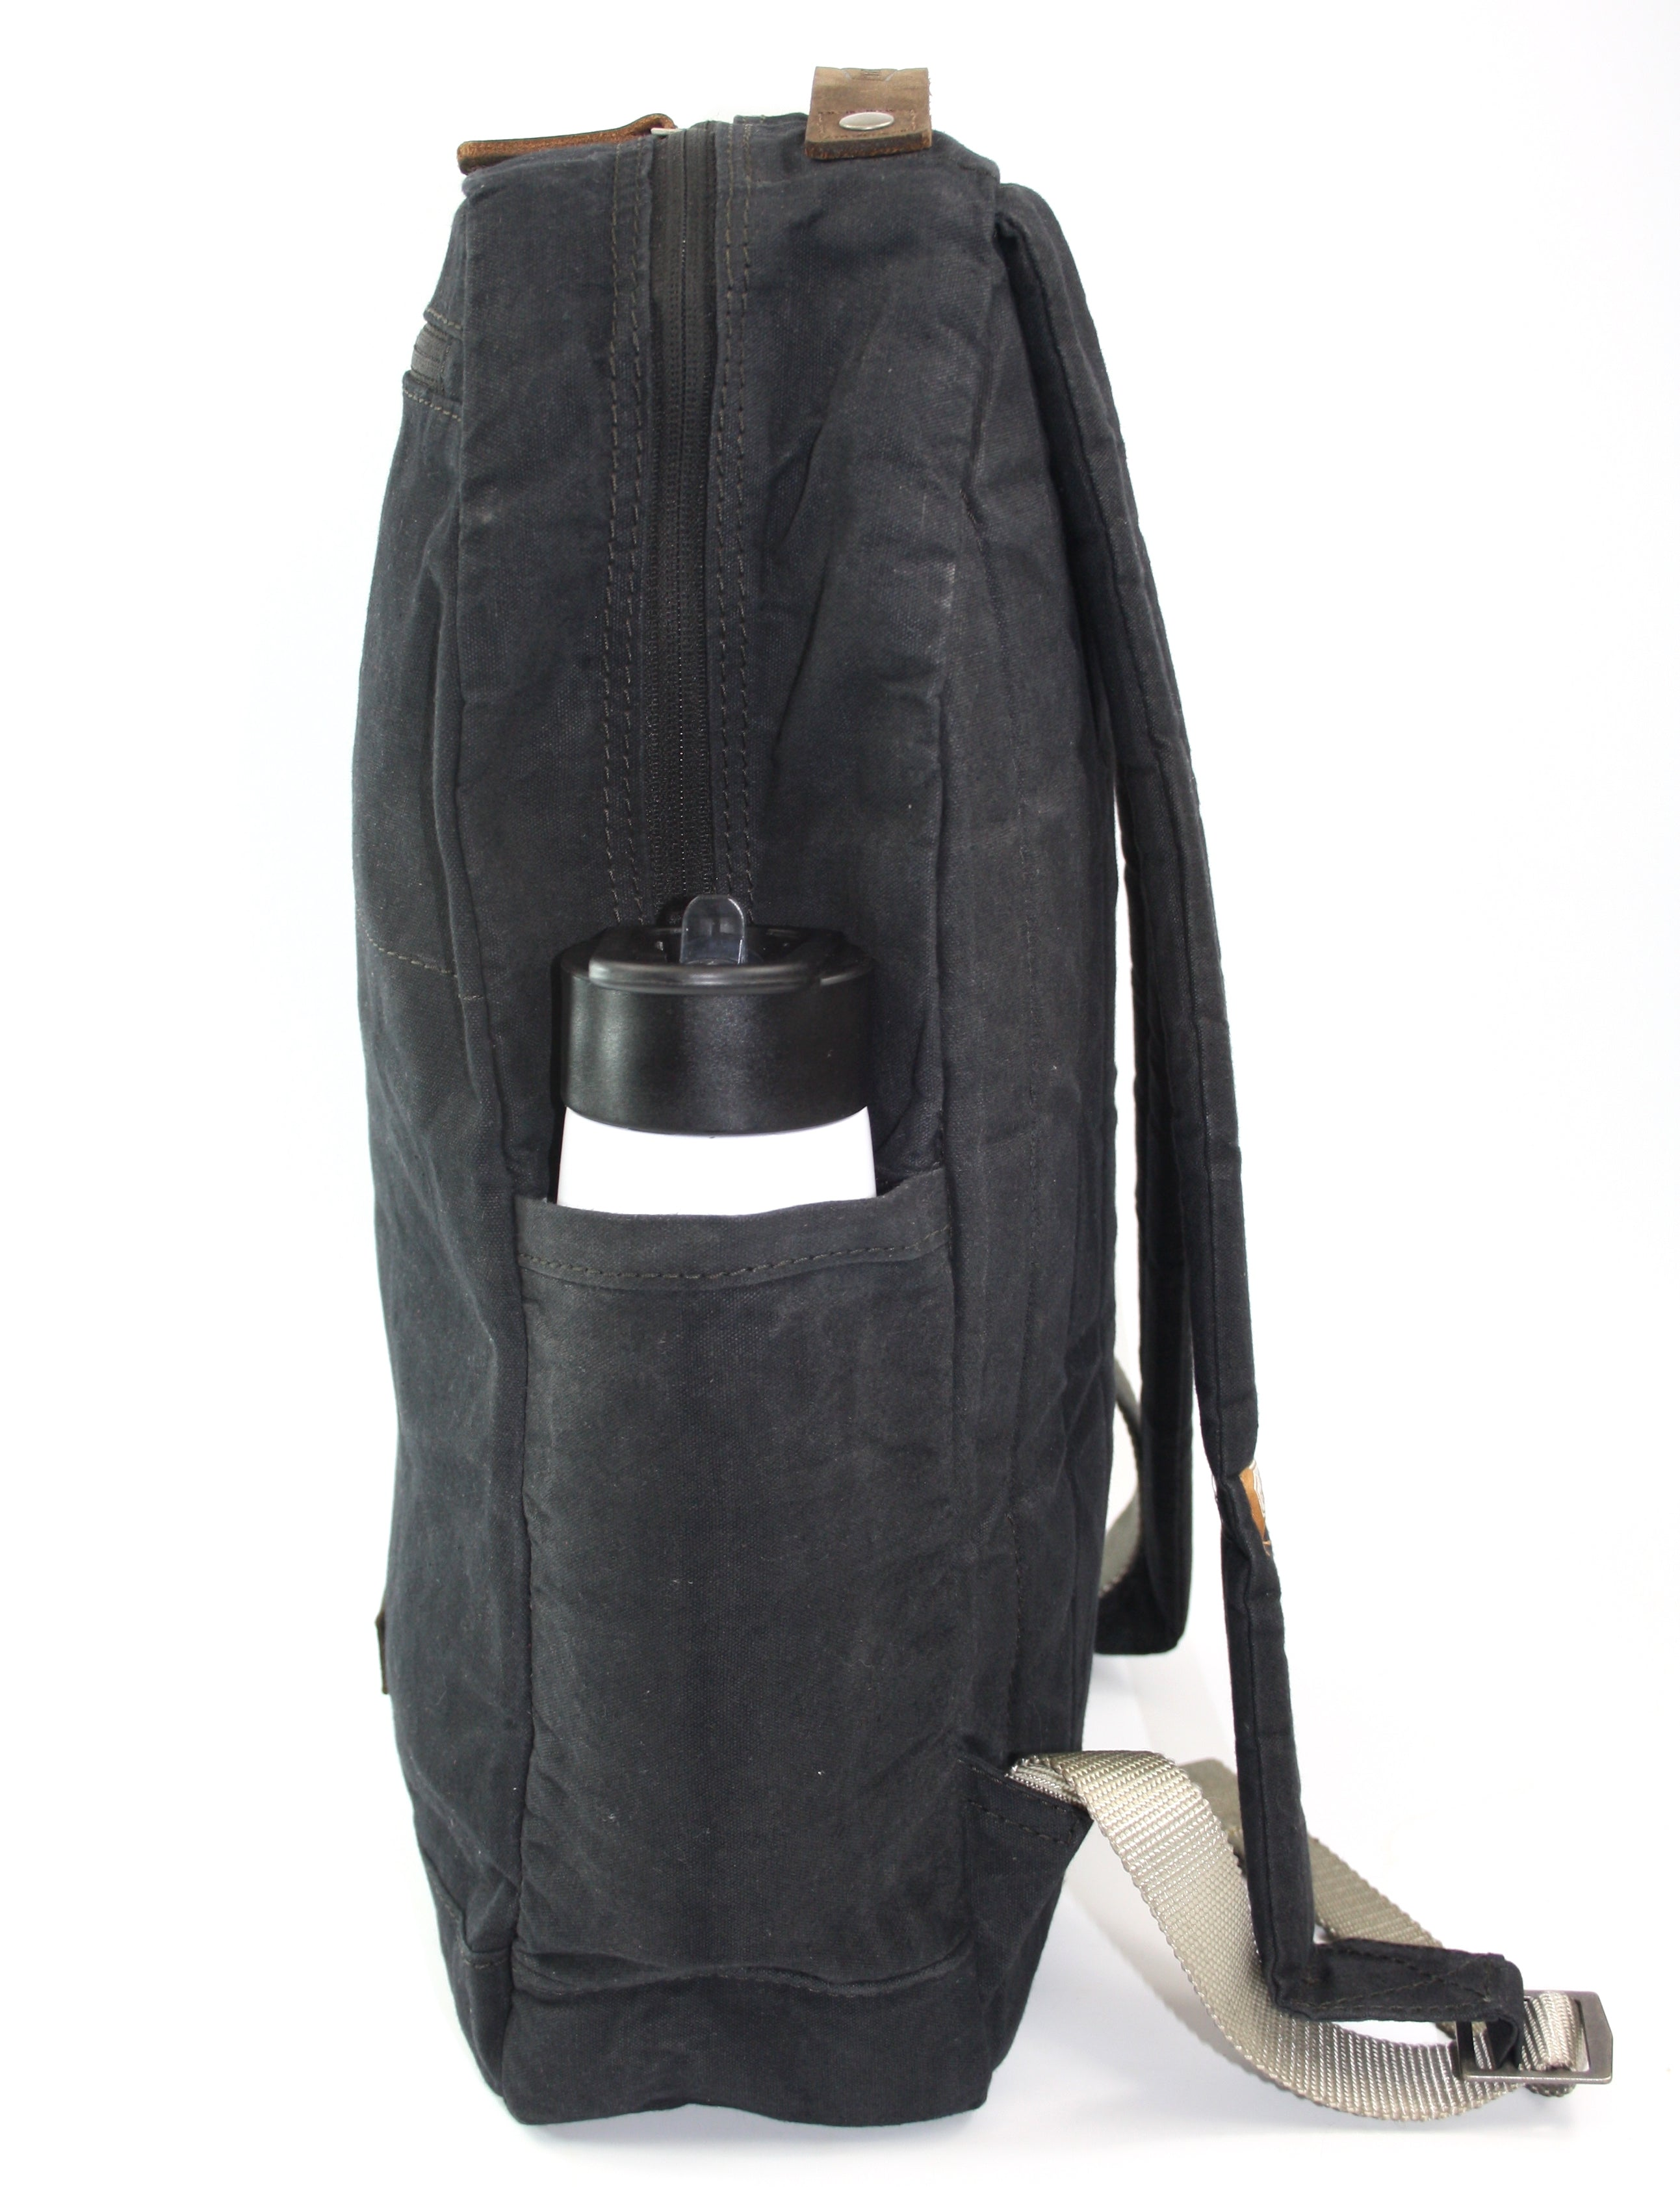 vintage canvas backpack. waterproof canvas backpack. canvas laptop backpack. large canvas backpack. 100recycled backpack. socially responsible backpacks. backpacks made from recycled materials. sustainable travel bag. book bags for college. backpacks for school.